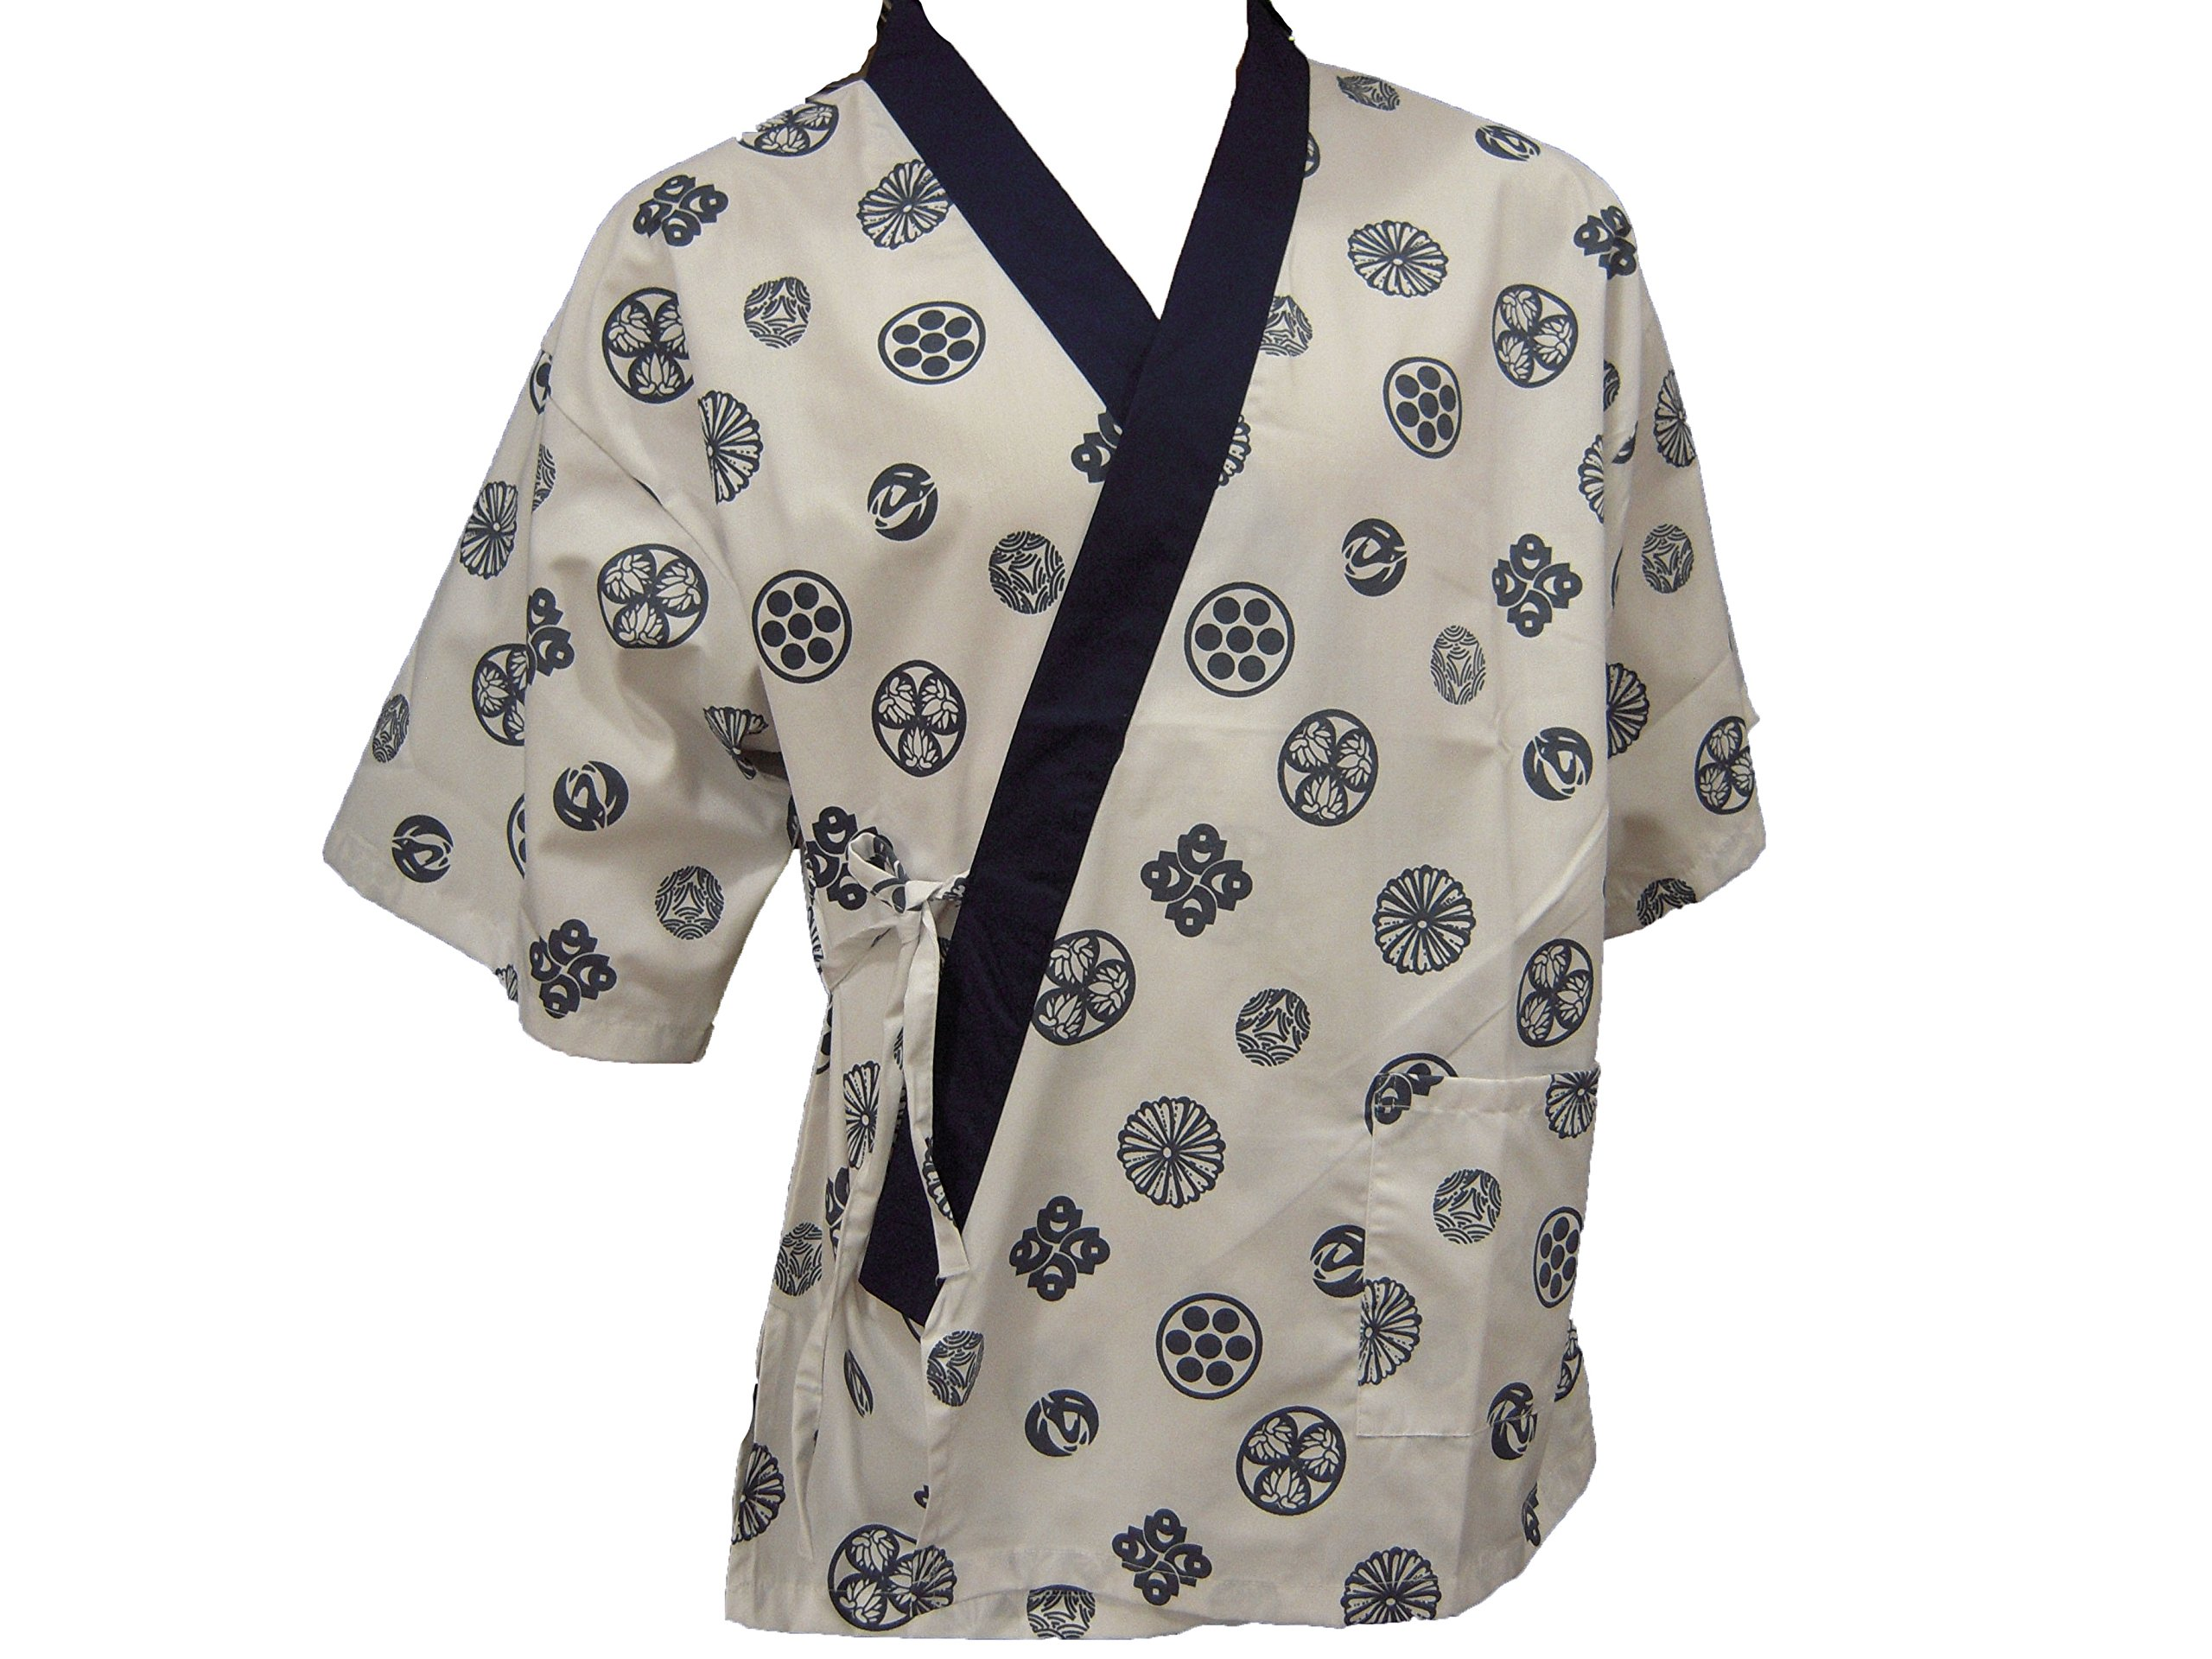 White Chinese Print Sushi Chef Uniform in Large